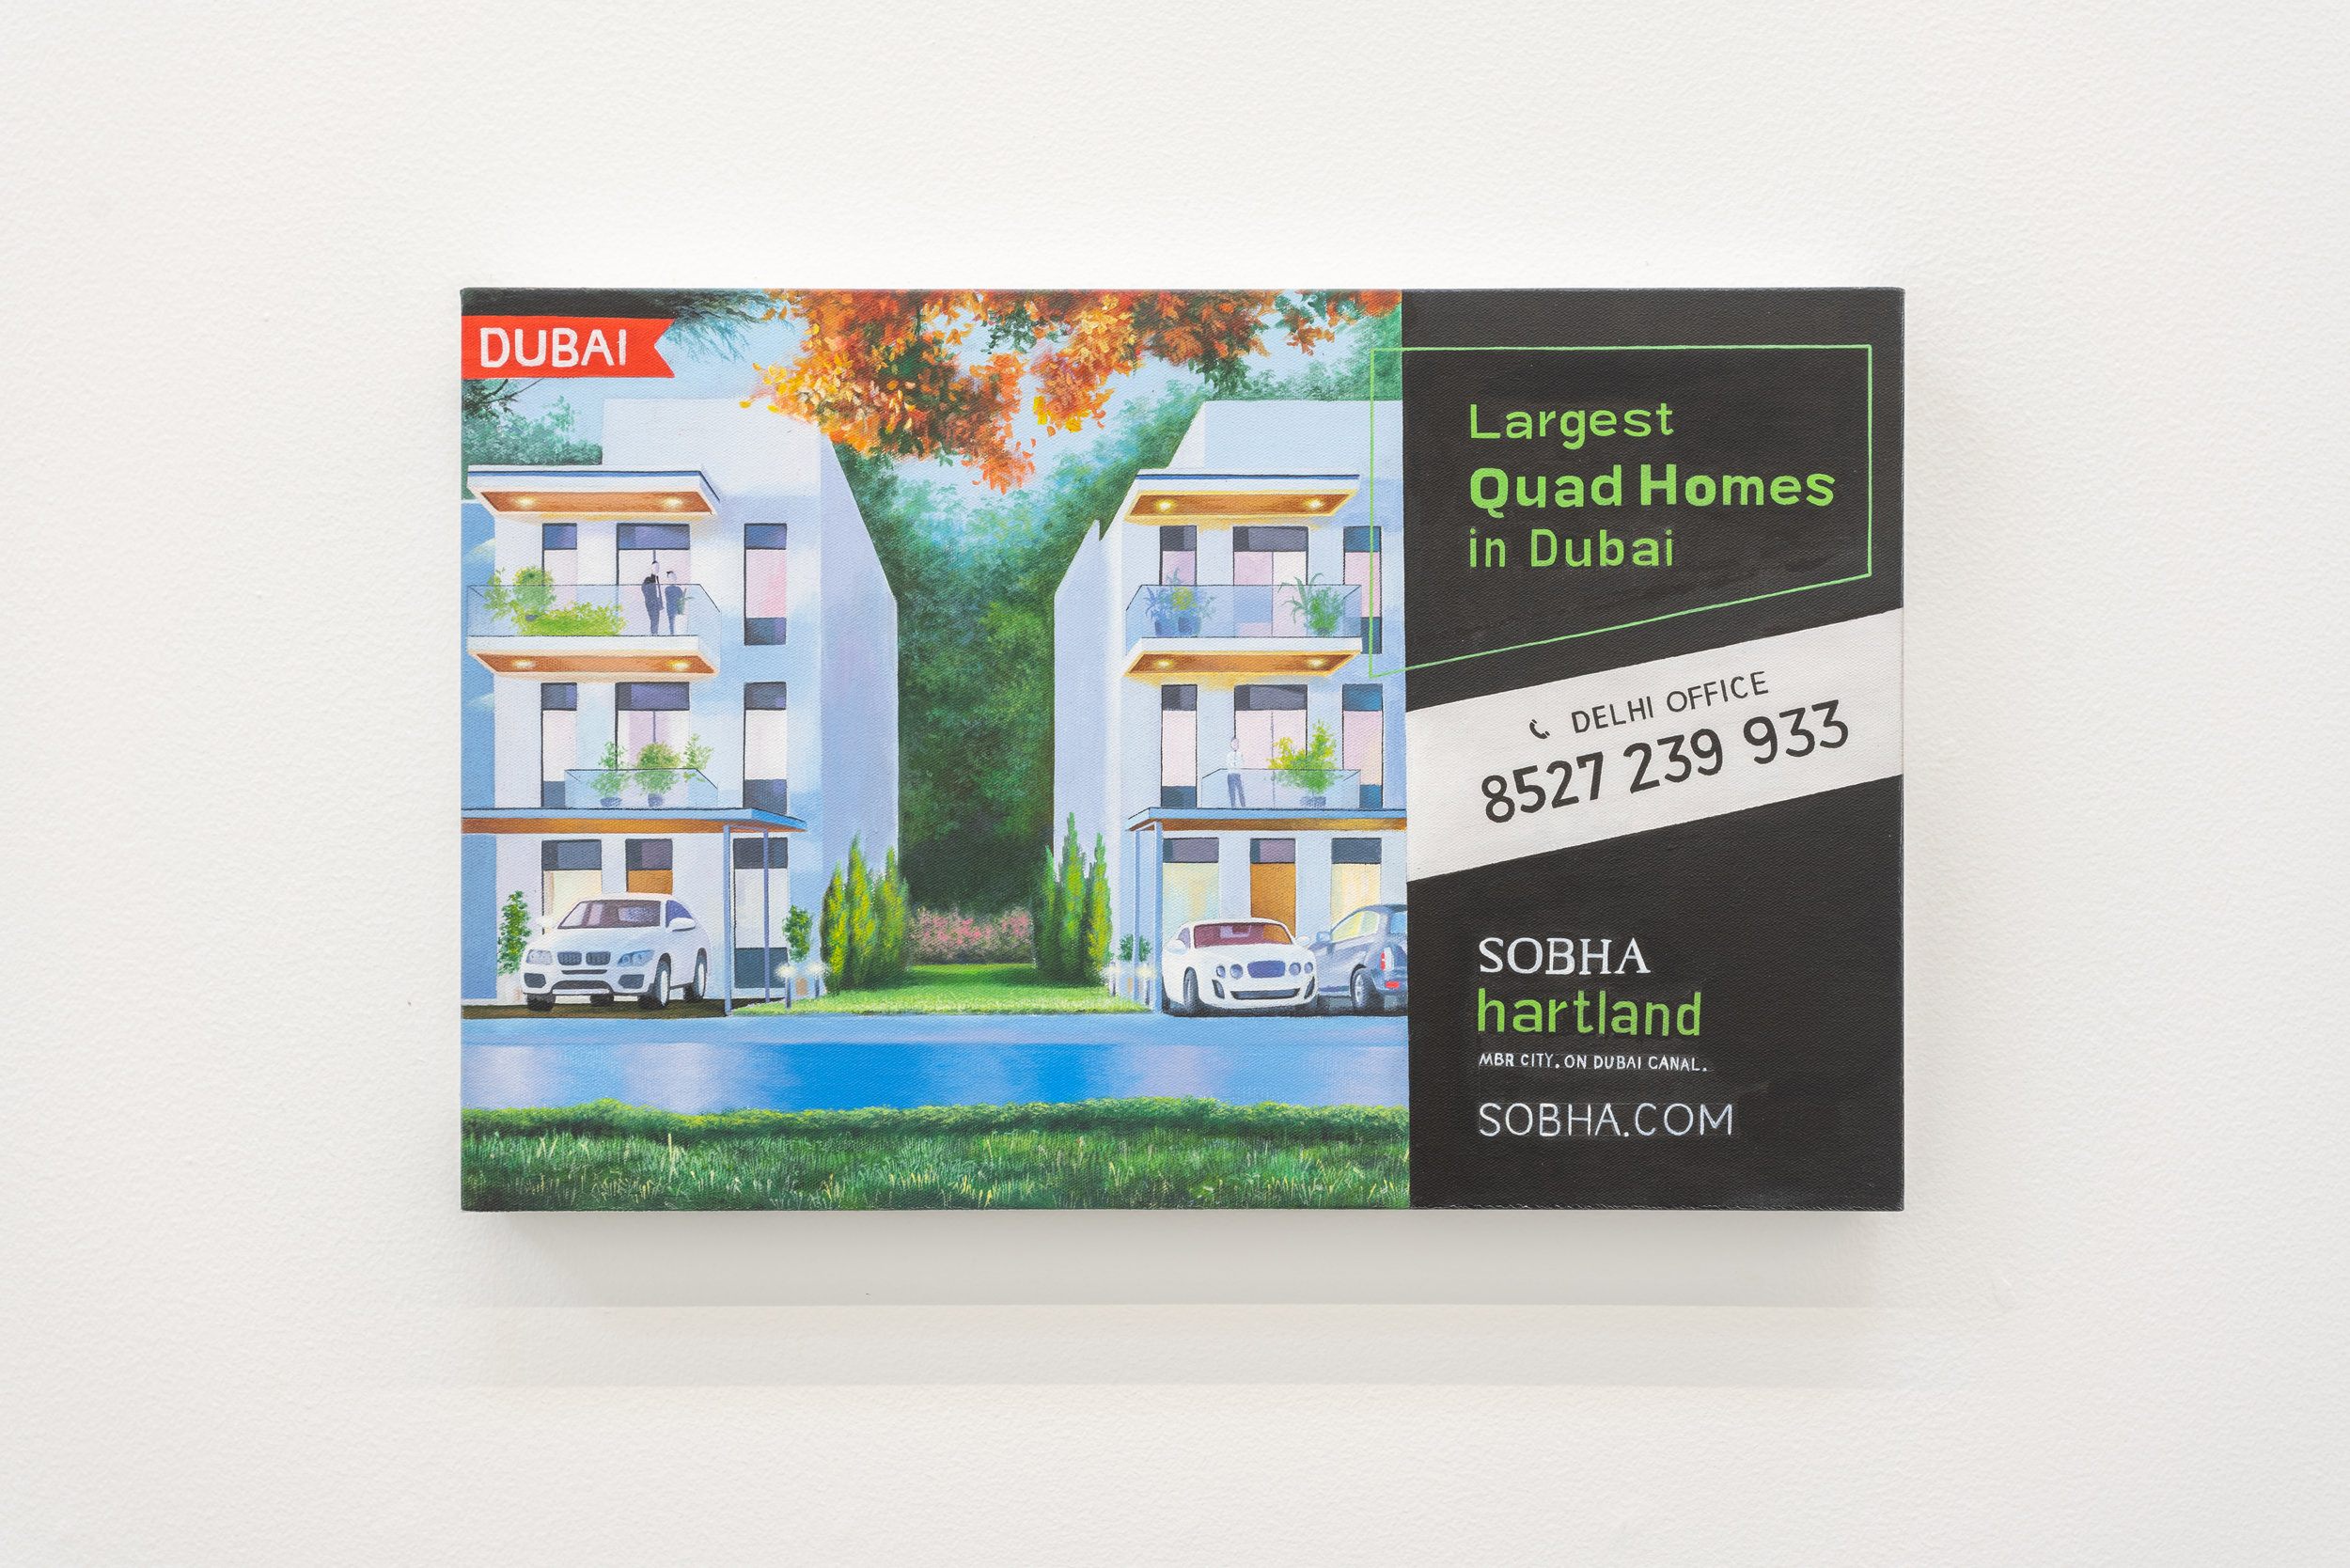 LARGEST QUAD HOMES IN DUBAI, 2018, oil on canvas, painting of a billboard in Delhi advertising real estate investment opportunity, 36.4 x 56.9 cm. Image courtesy of the artist and Grey Noise.